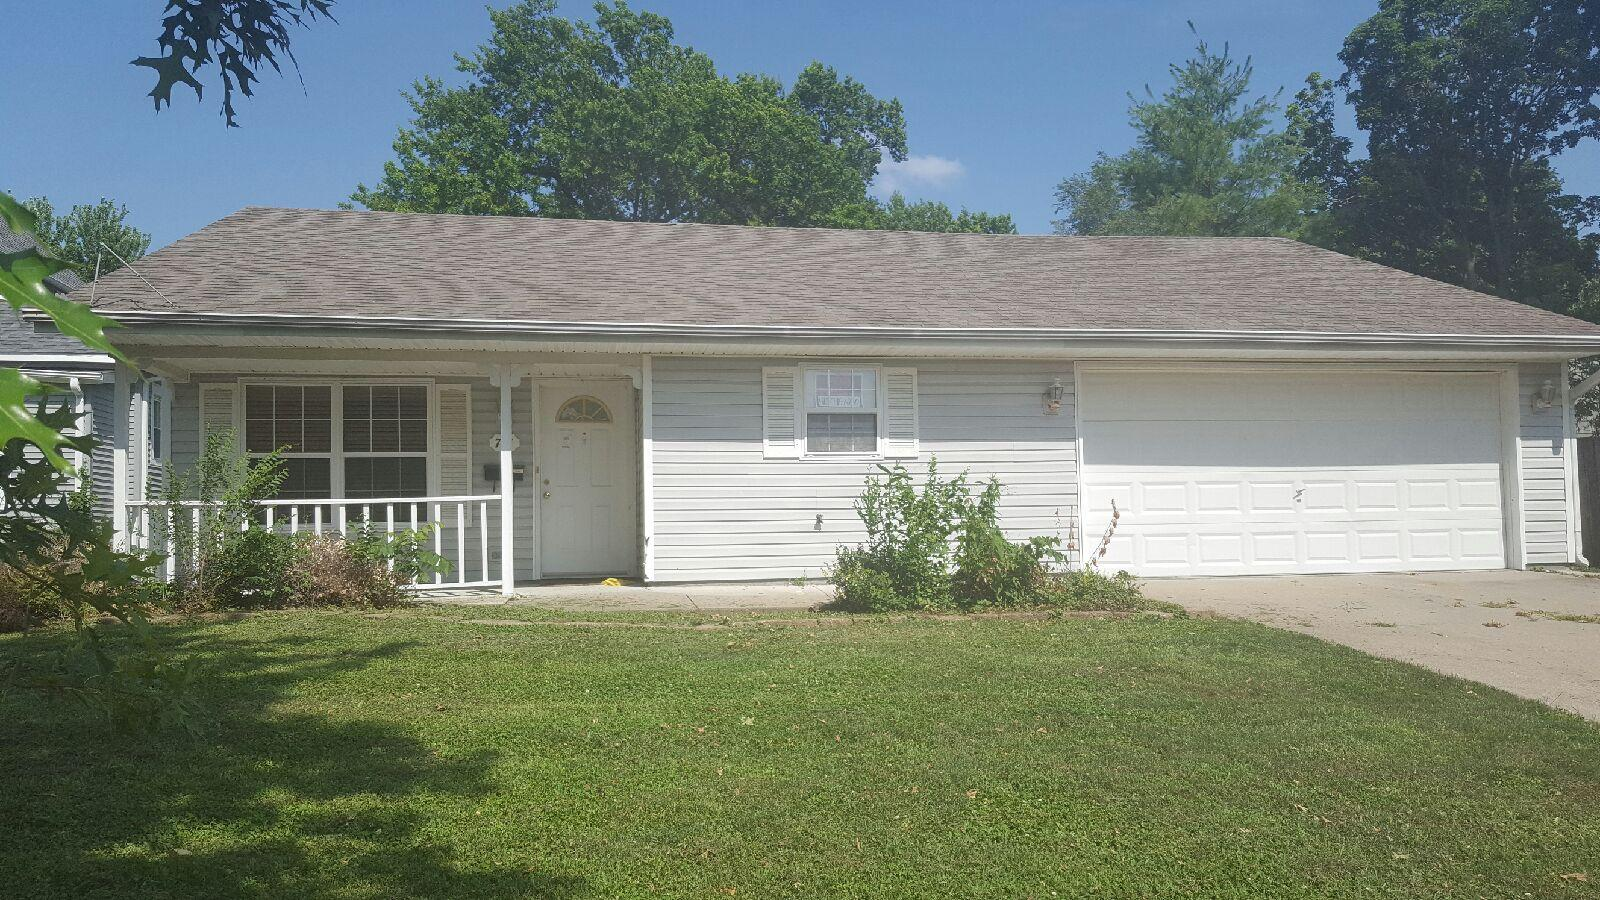 711 FILLMORE ST, Maryville, Missouri 64468, 4 Bedrooms Bedrooms, ,3 BathroomsBathrooms,Residential,FILLMORE,3546